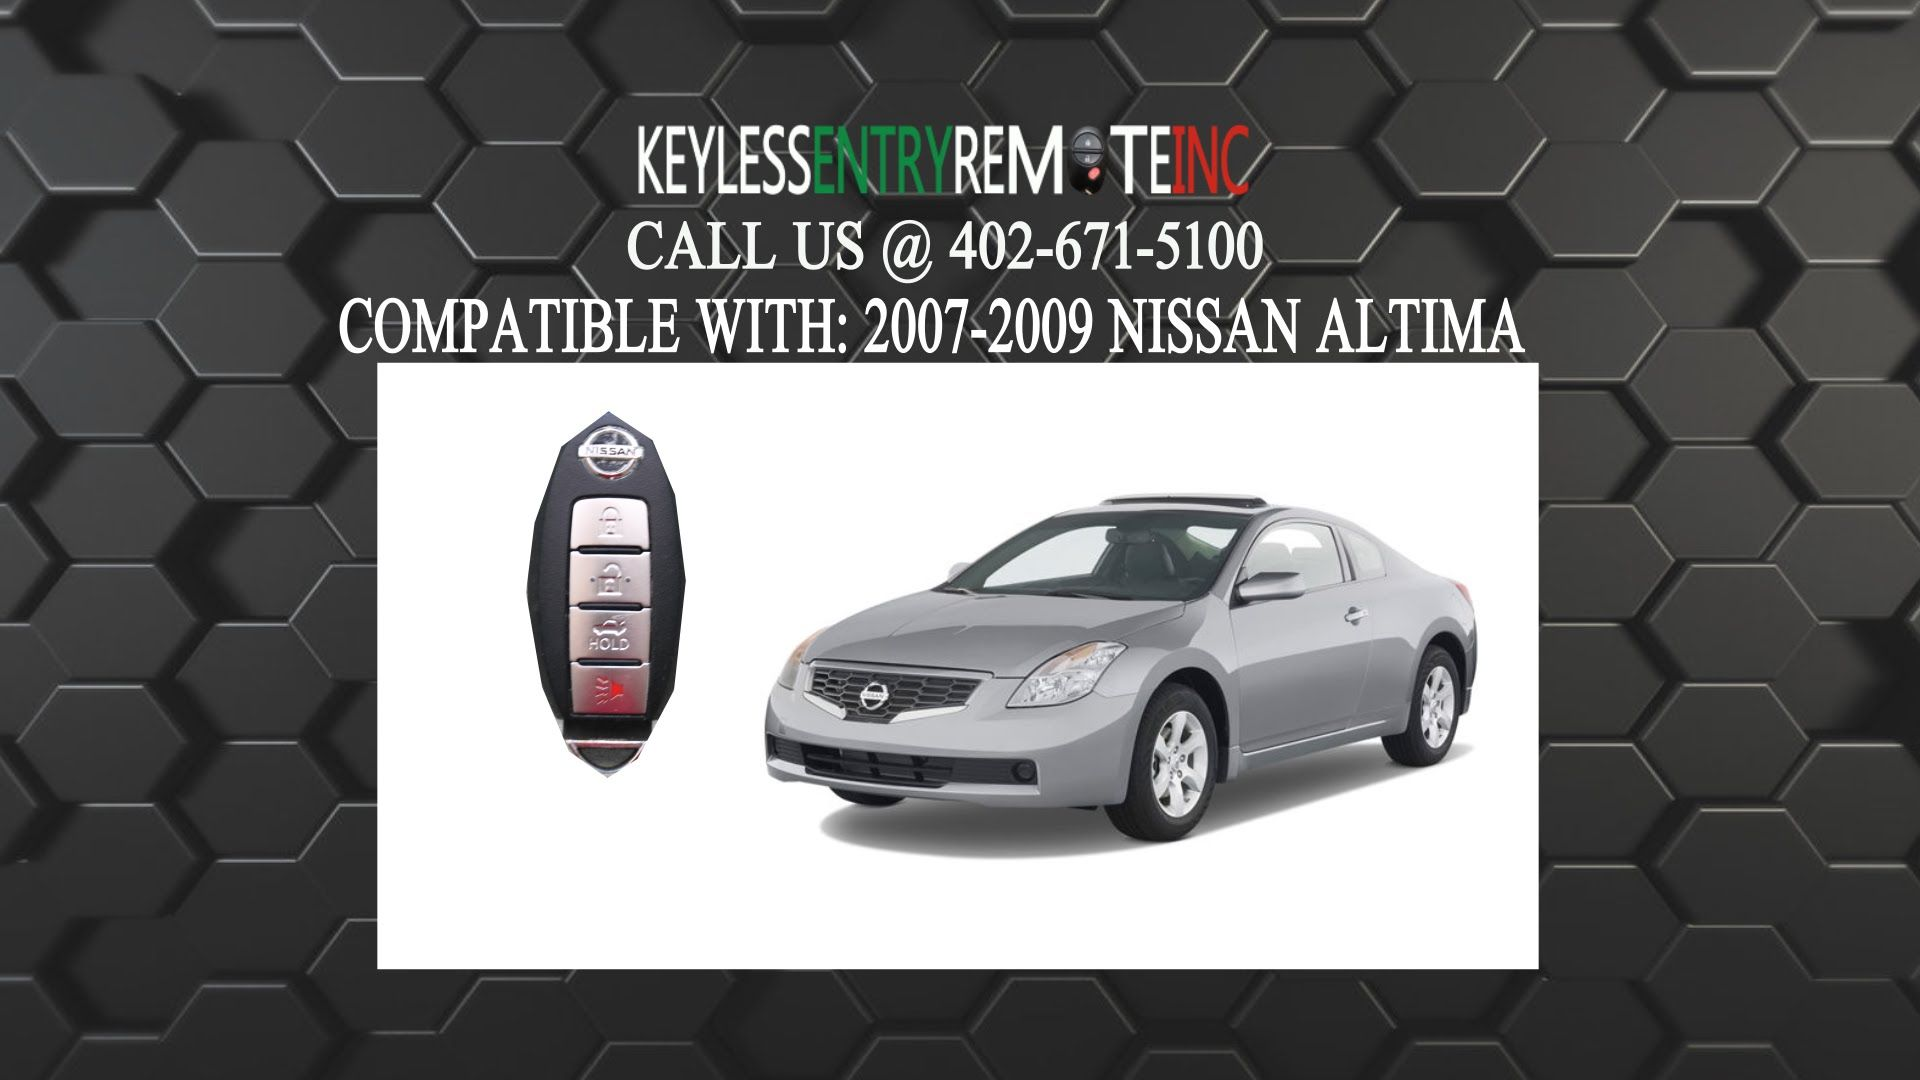 How To Replace Nissan Altima Key Fob Battery 2007 2012 Nissan